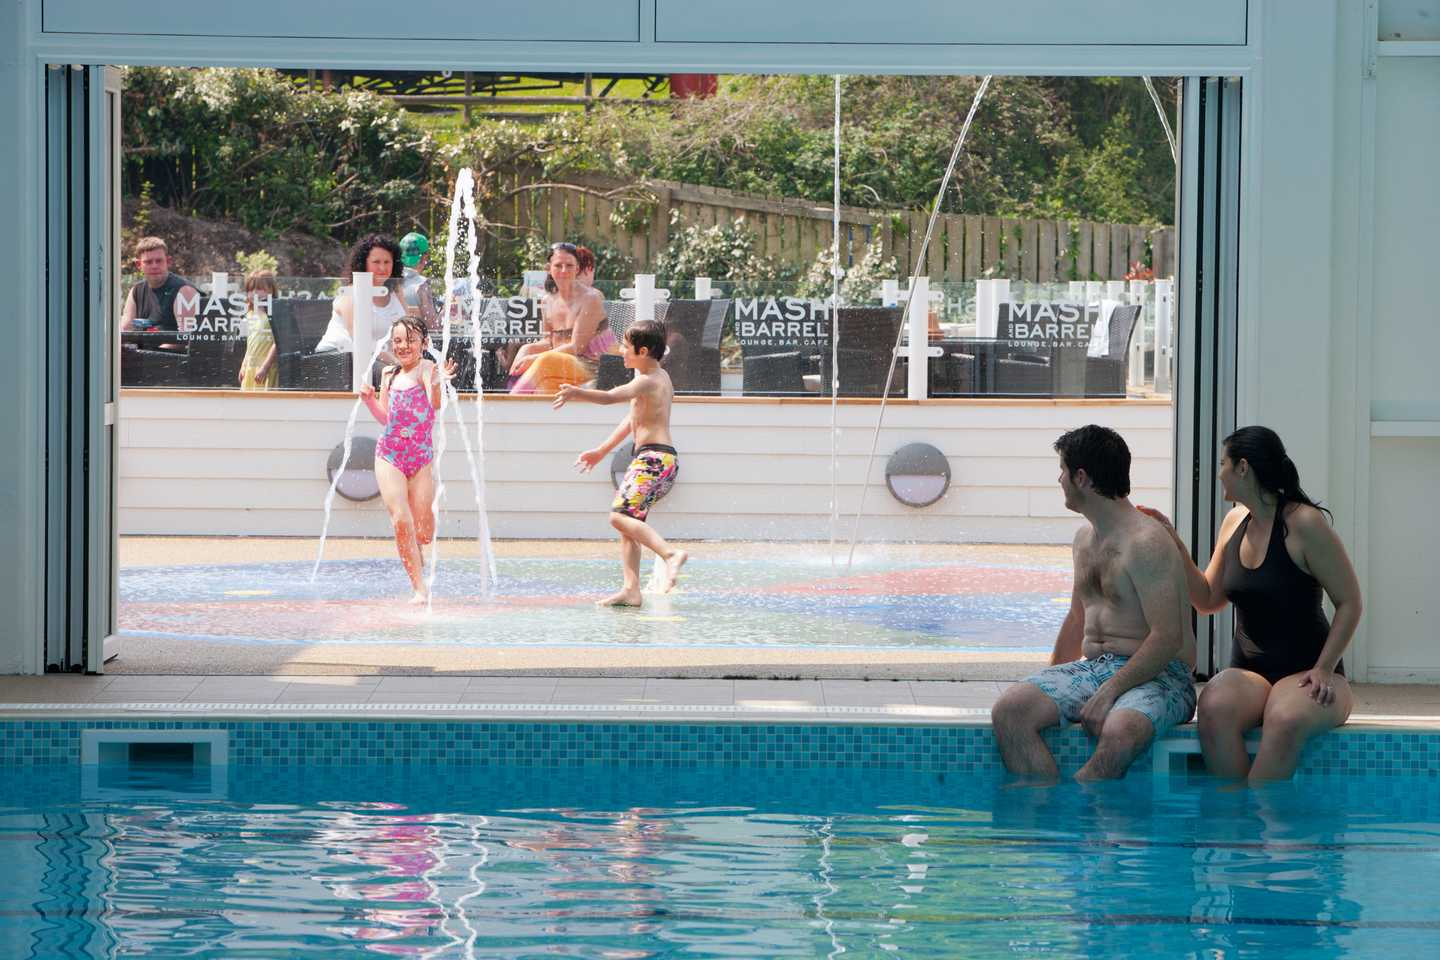 Guests playing in the splash area